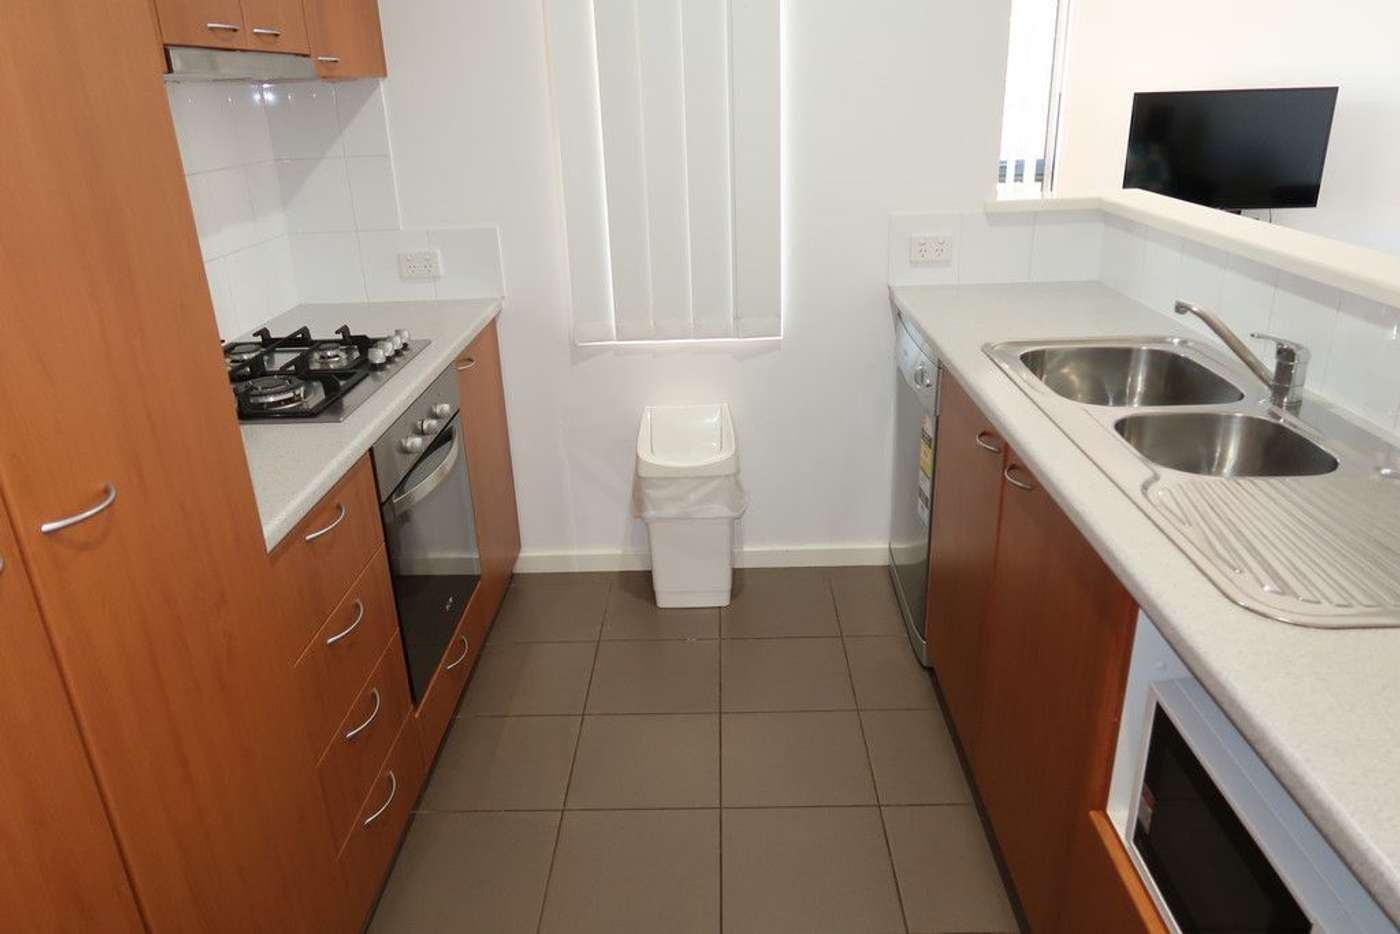 Main view of Homely house listing, 17/30 Dugong Close, Exmouth WA 6707